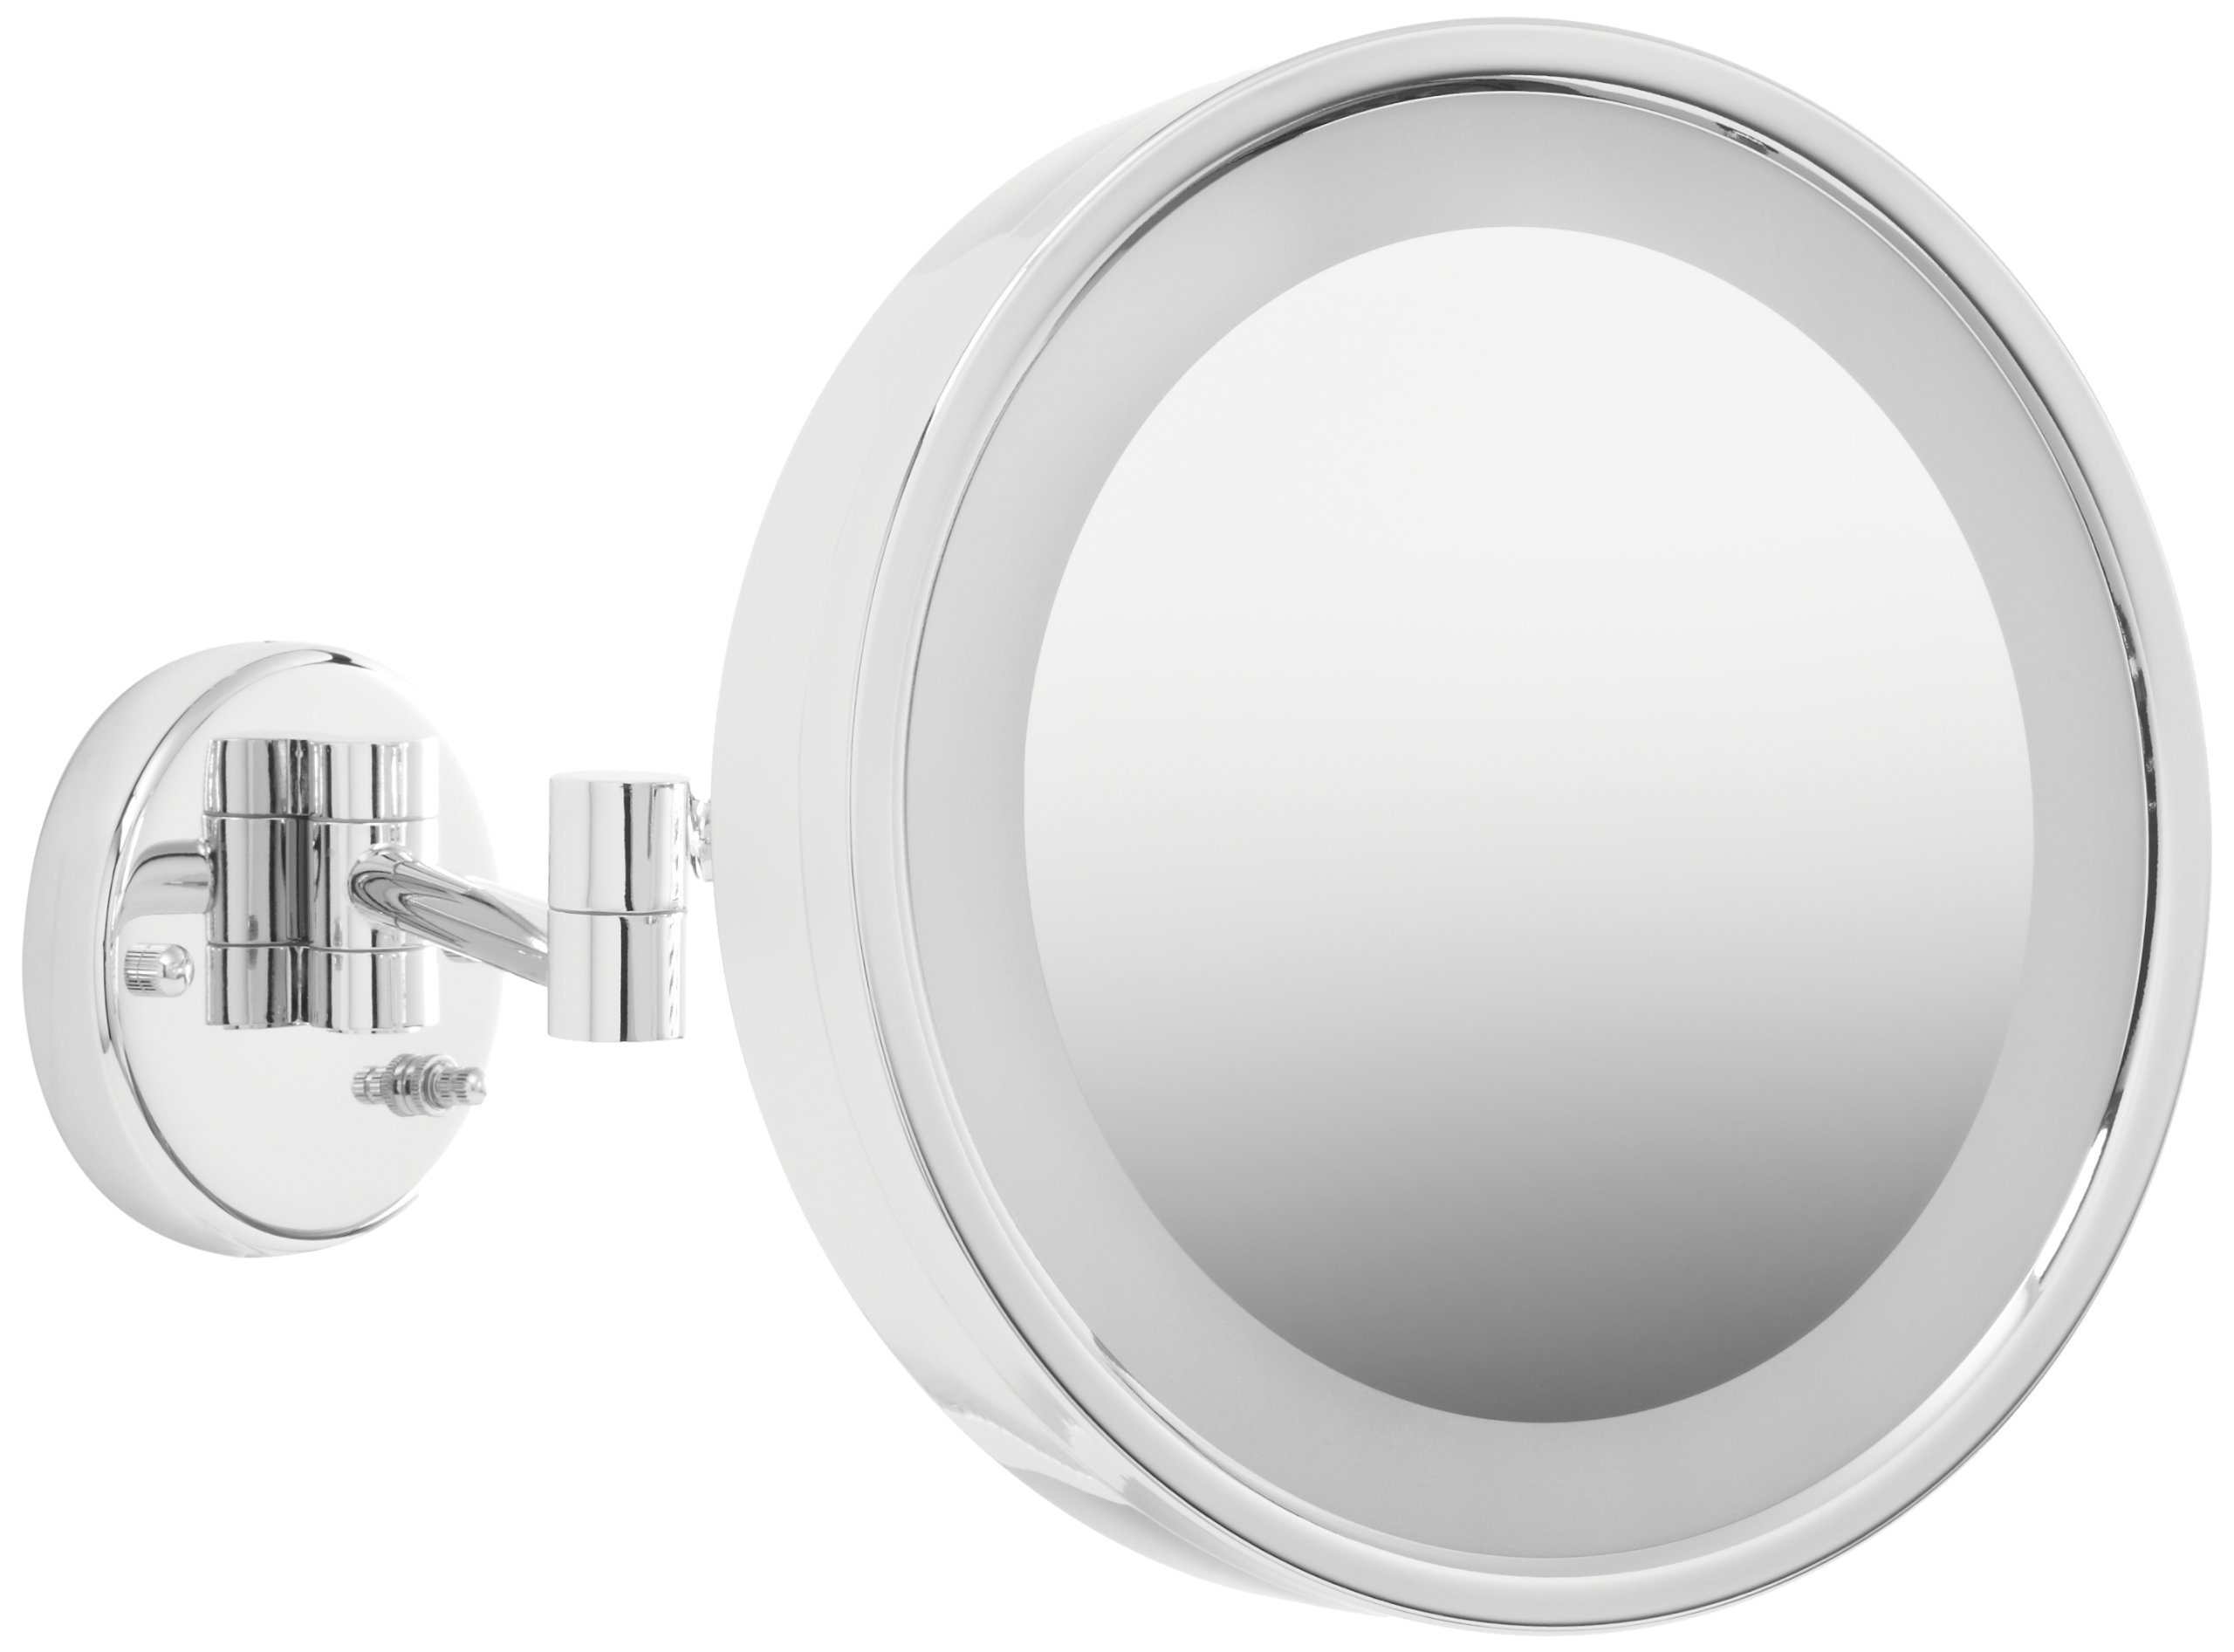 Jerdon HL7CF 9.75-Inch Lighted Wall Mount Makeup Mirror with 3x Magnification, Chrome Finish